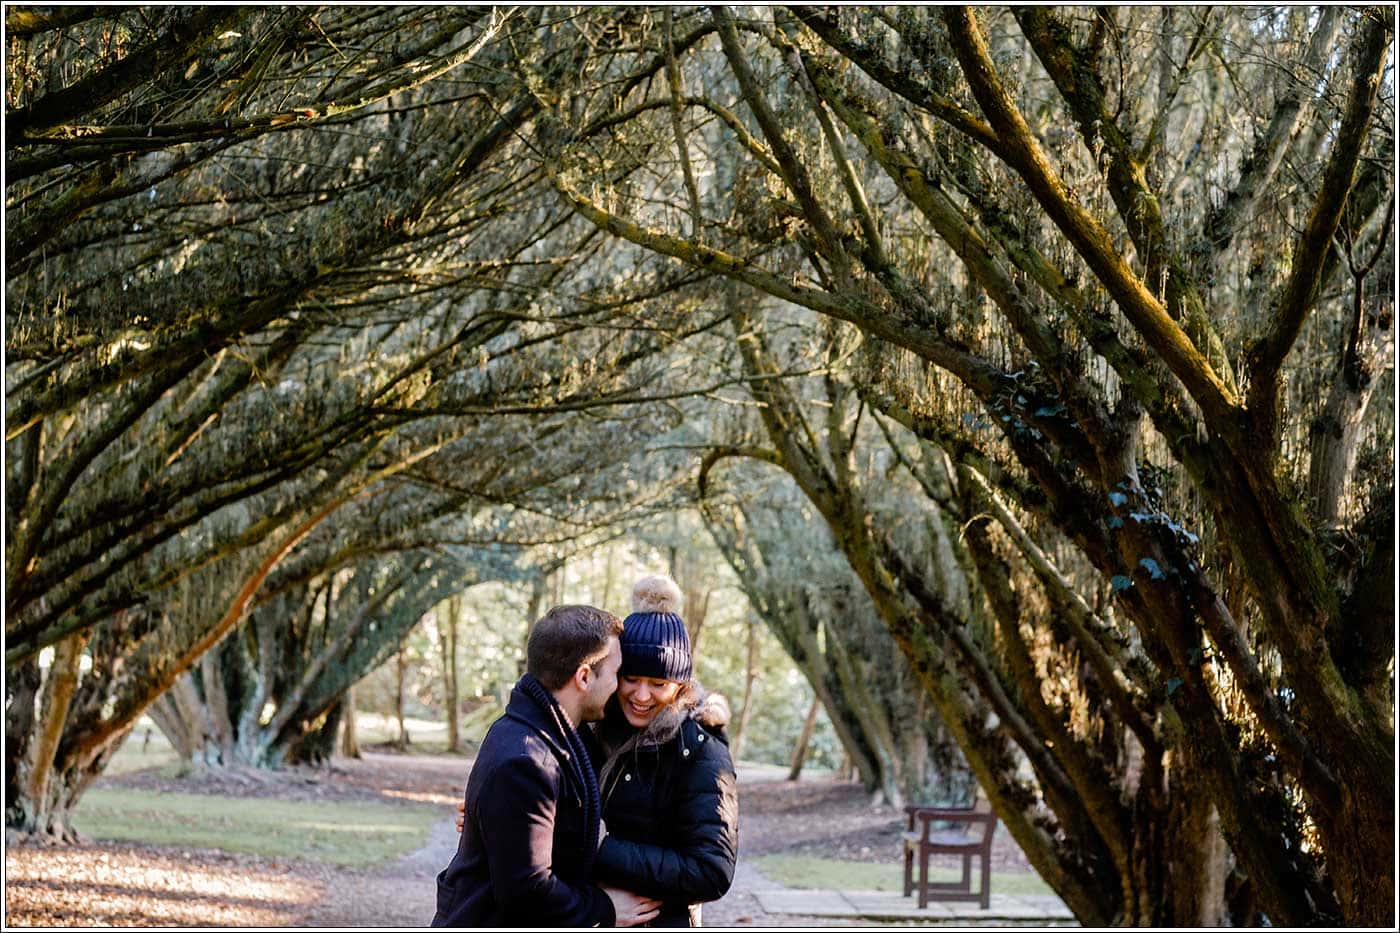 Man hugging his new fiancee after his simple proposal idea at New Hall by Clive Blair Photography